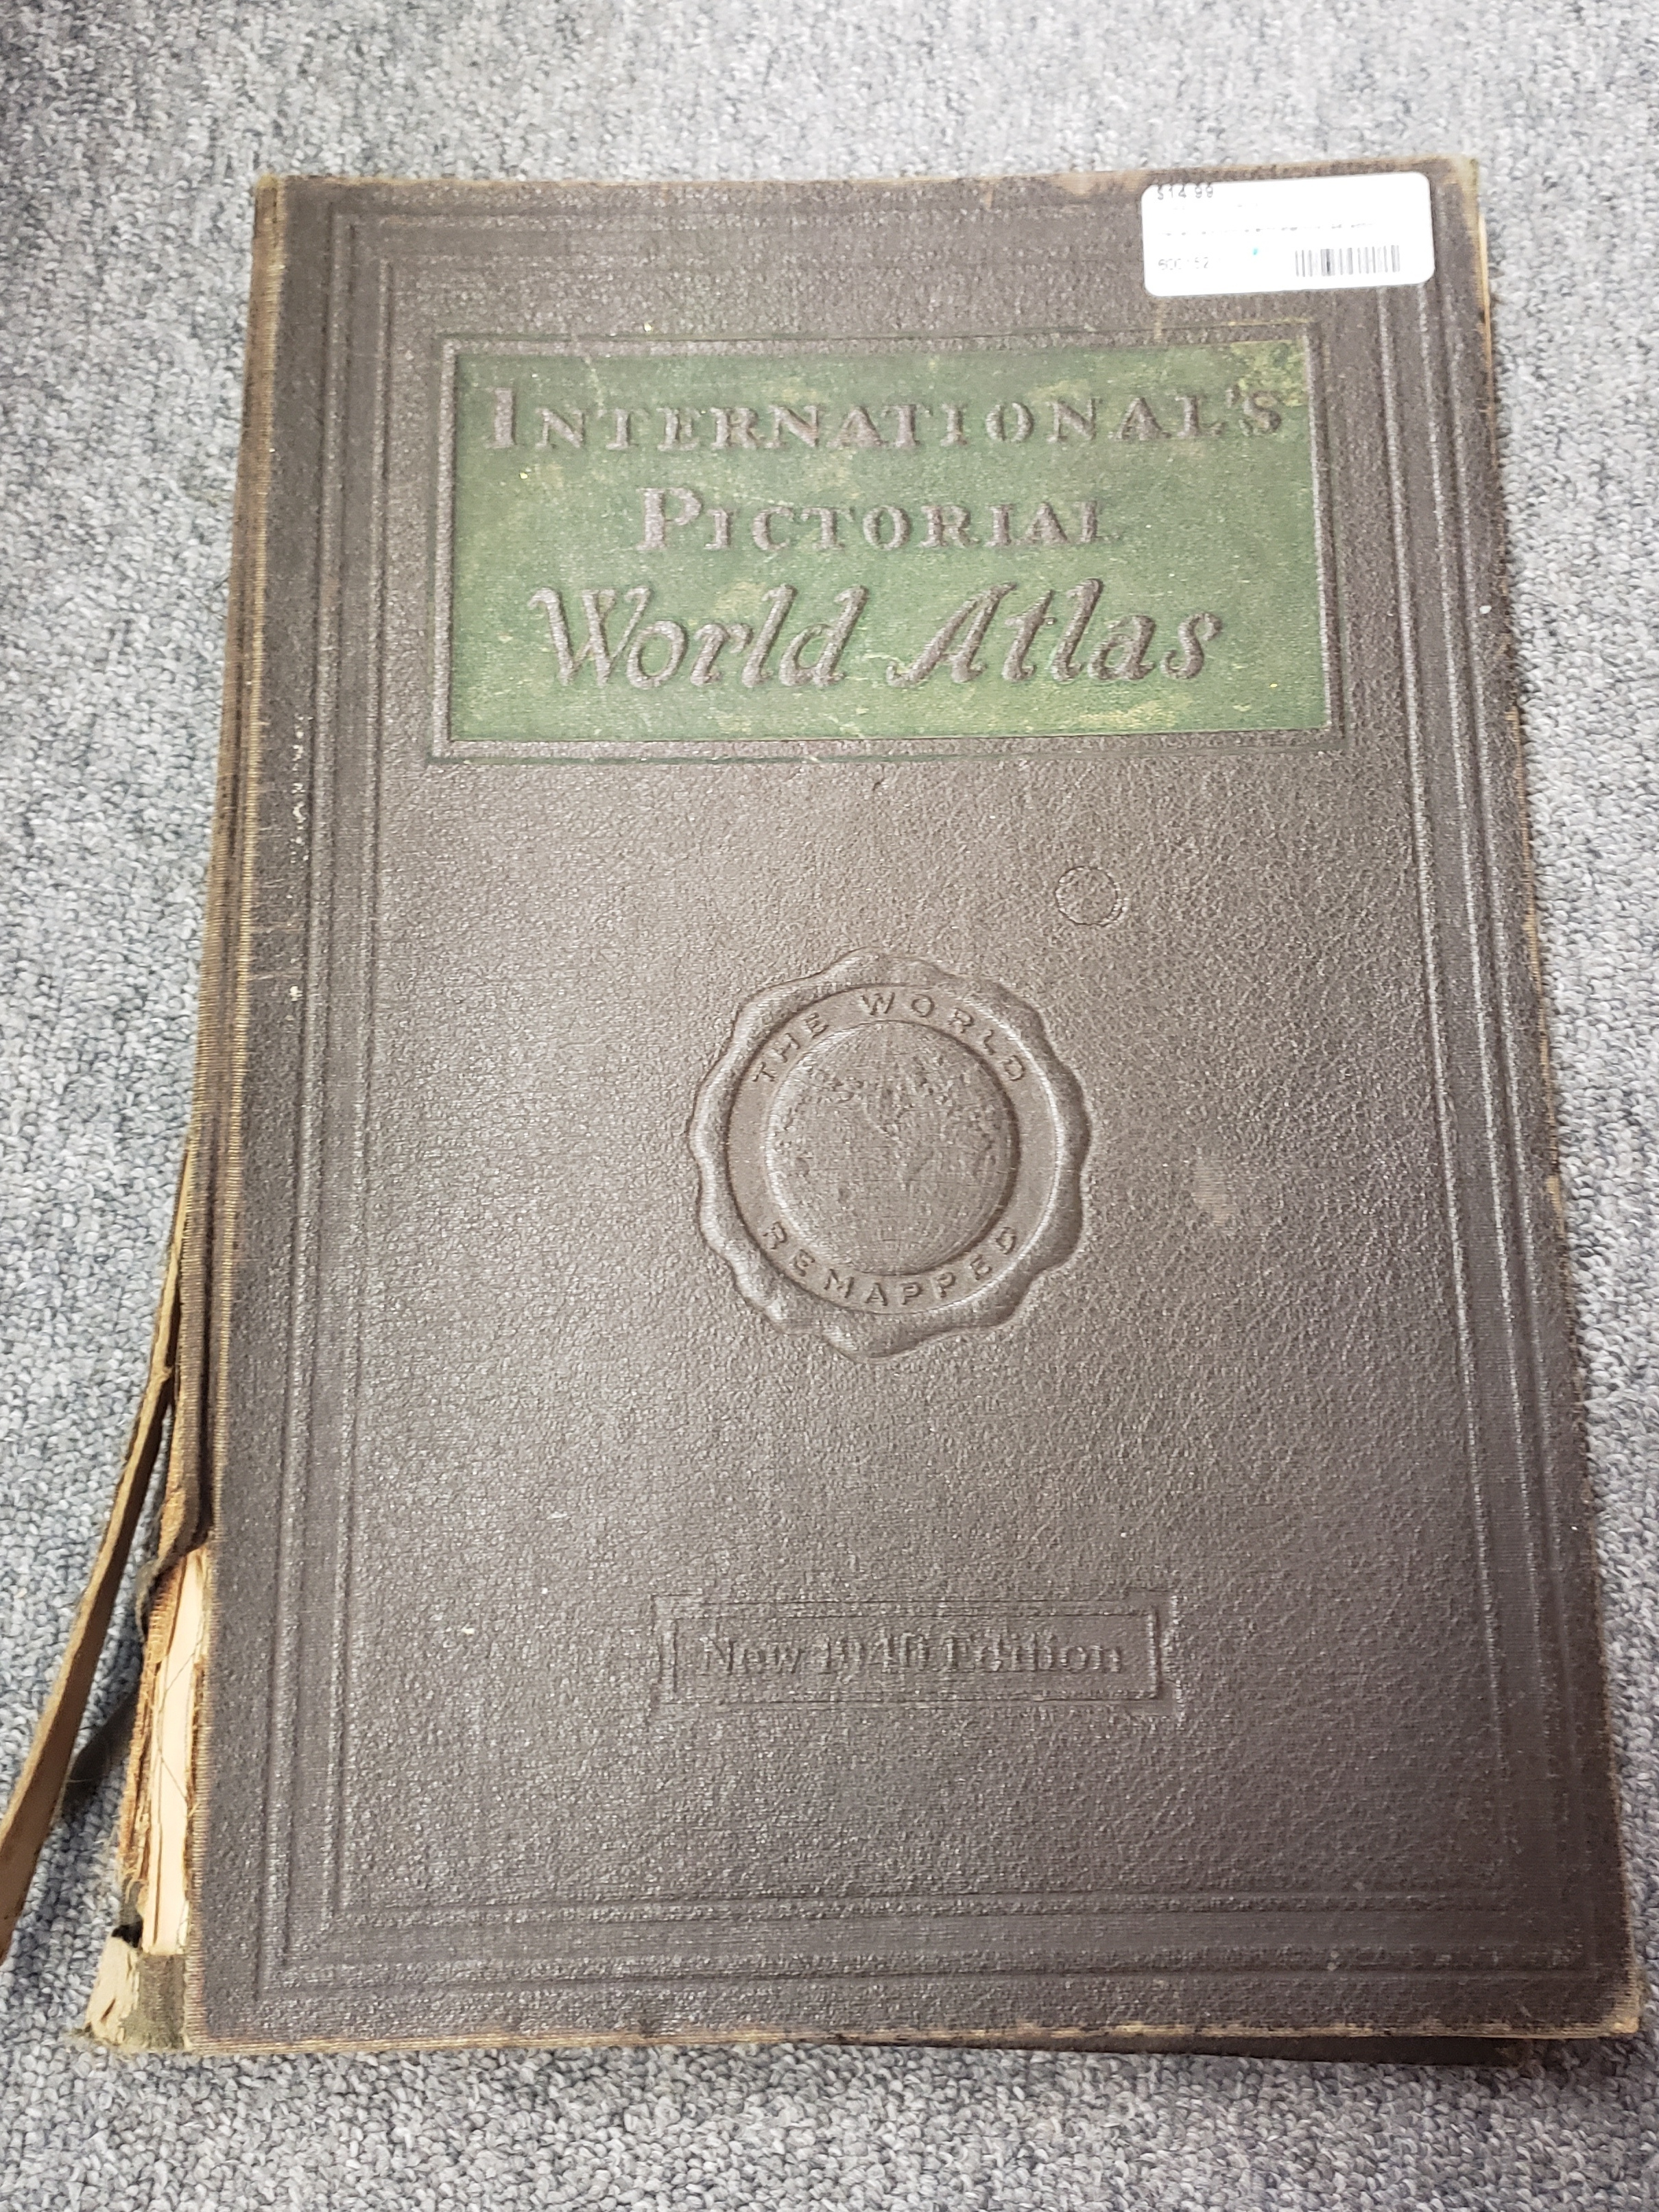 INTERNATIONAL'S PICTORIAL WORLD ATLAS BOOK 1940 EDITION